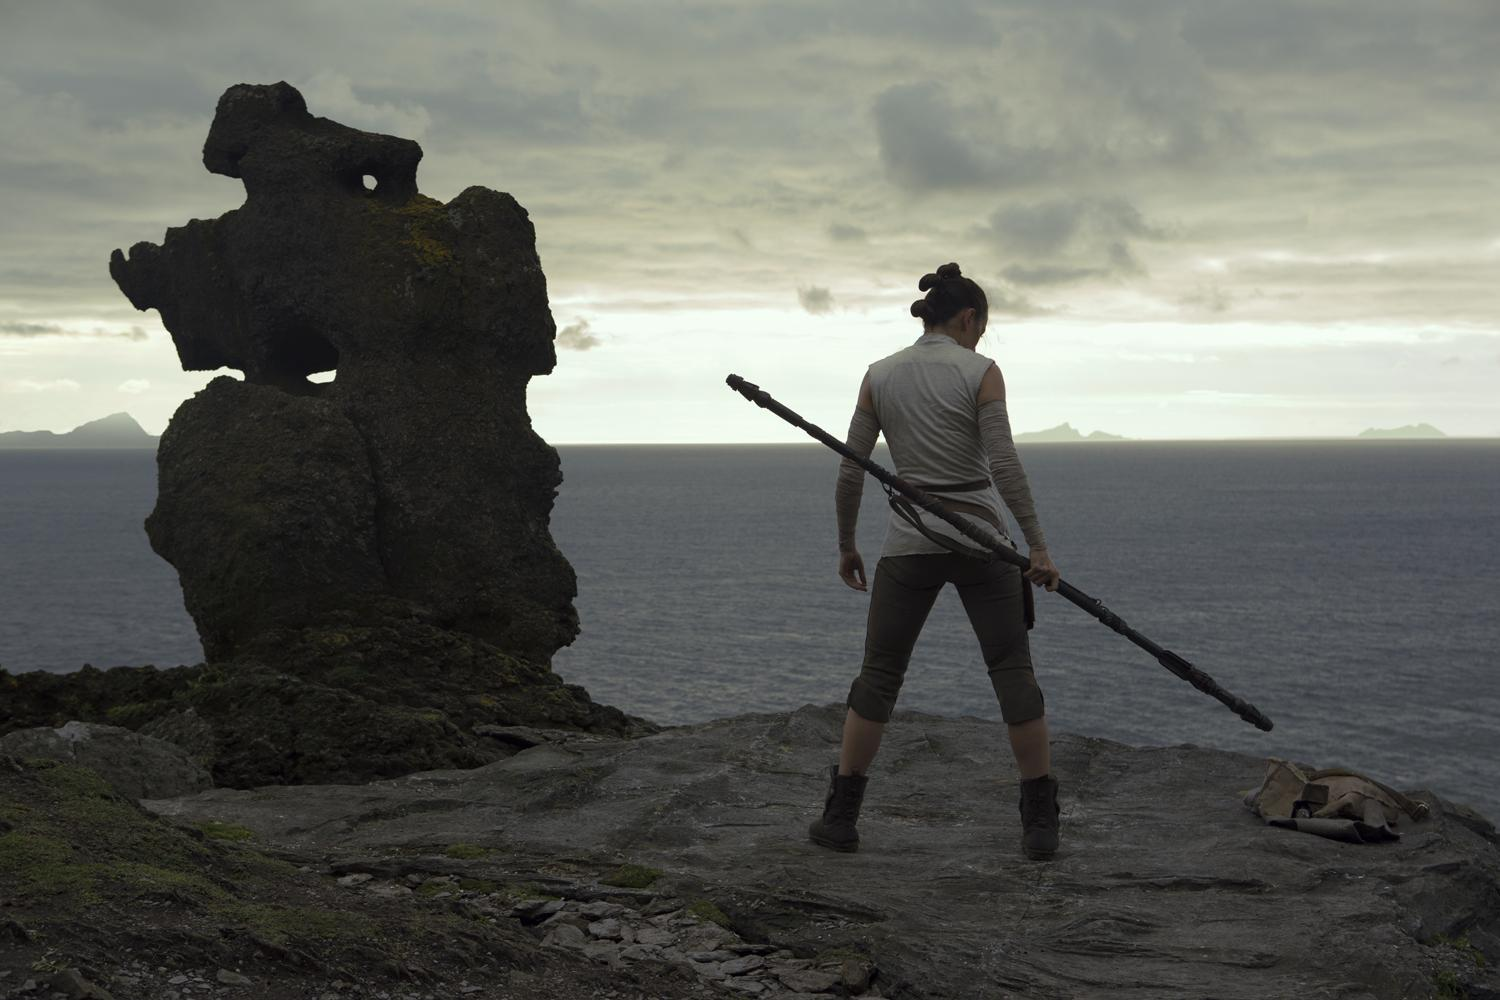 Star Wars: The Last Jedi set to pass $1bn mark by New Year's Eve